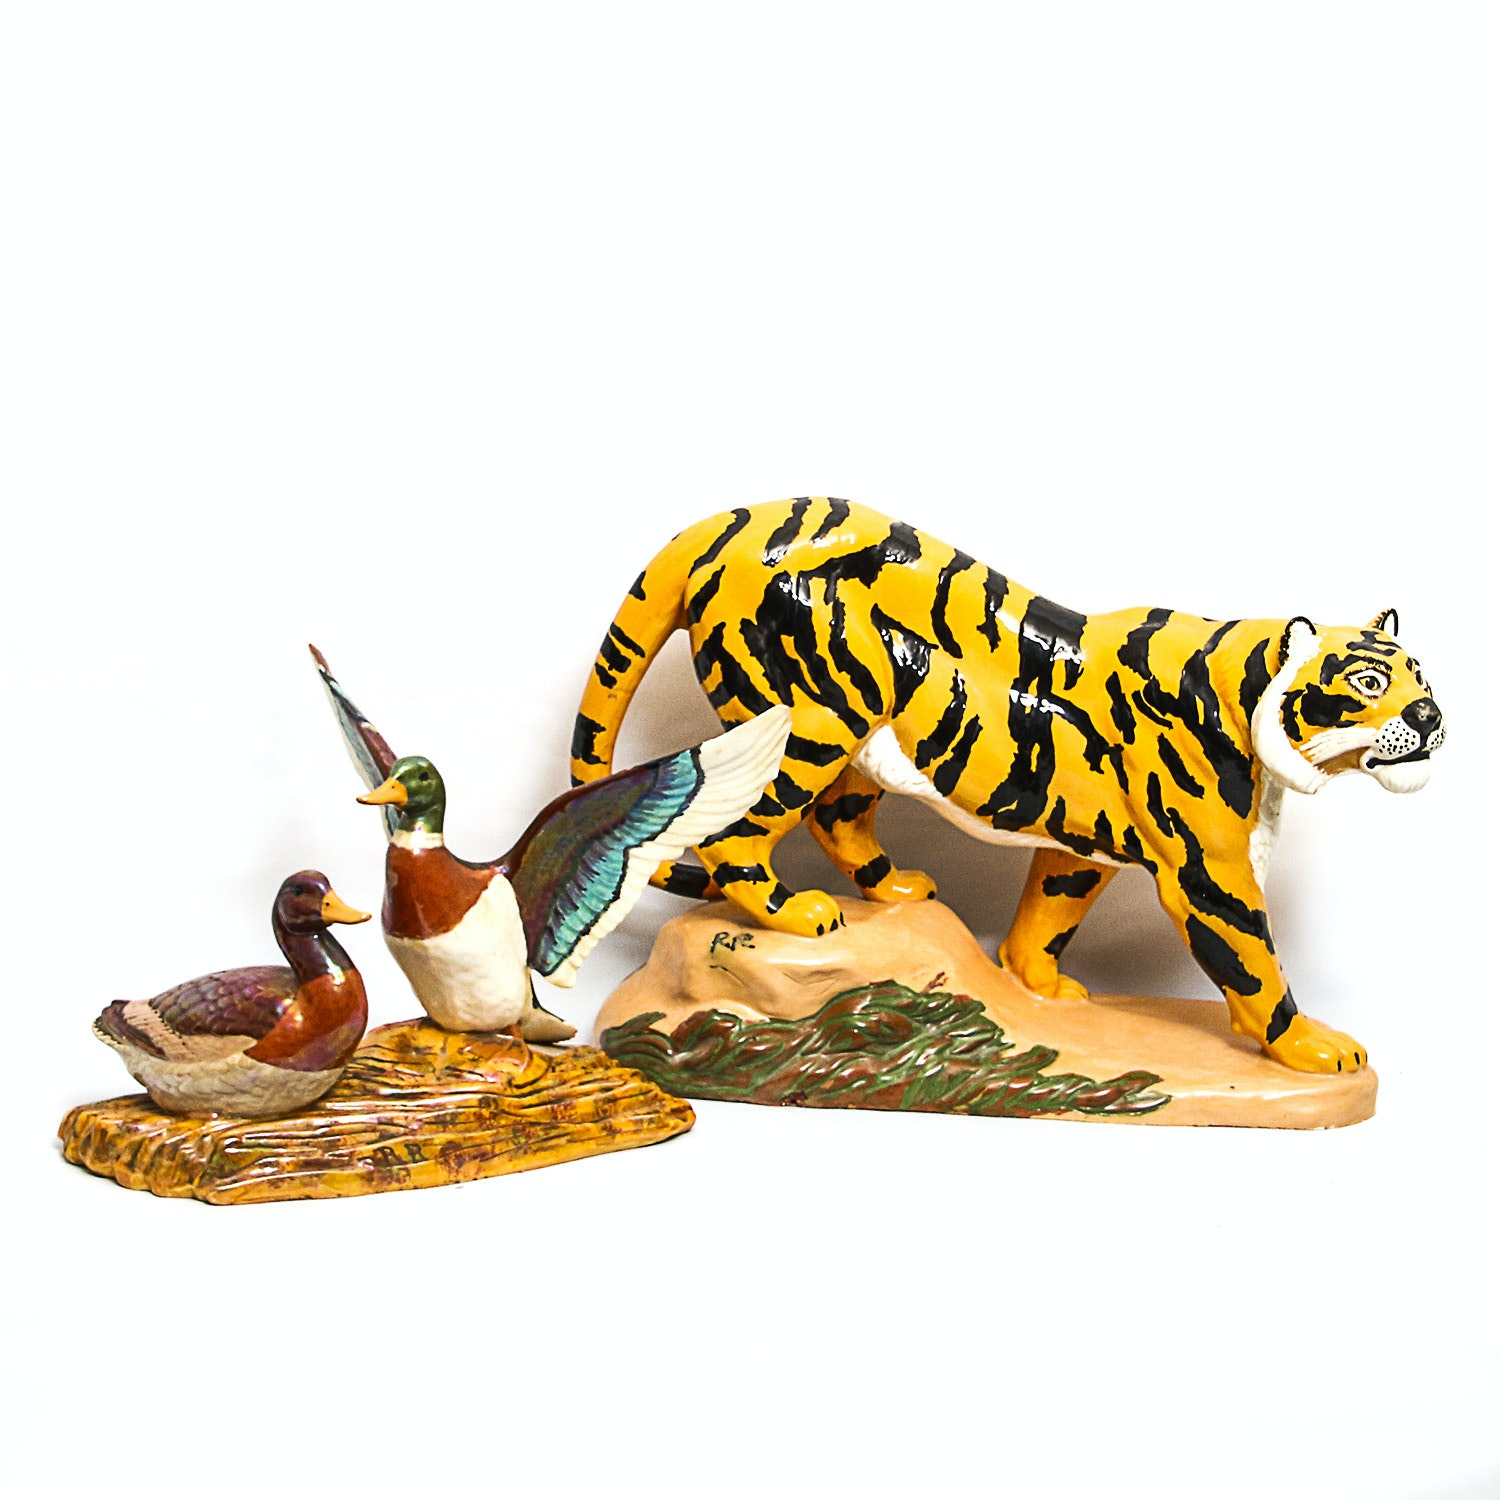 Pair of Hand-Painted Figurines